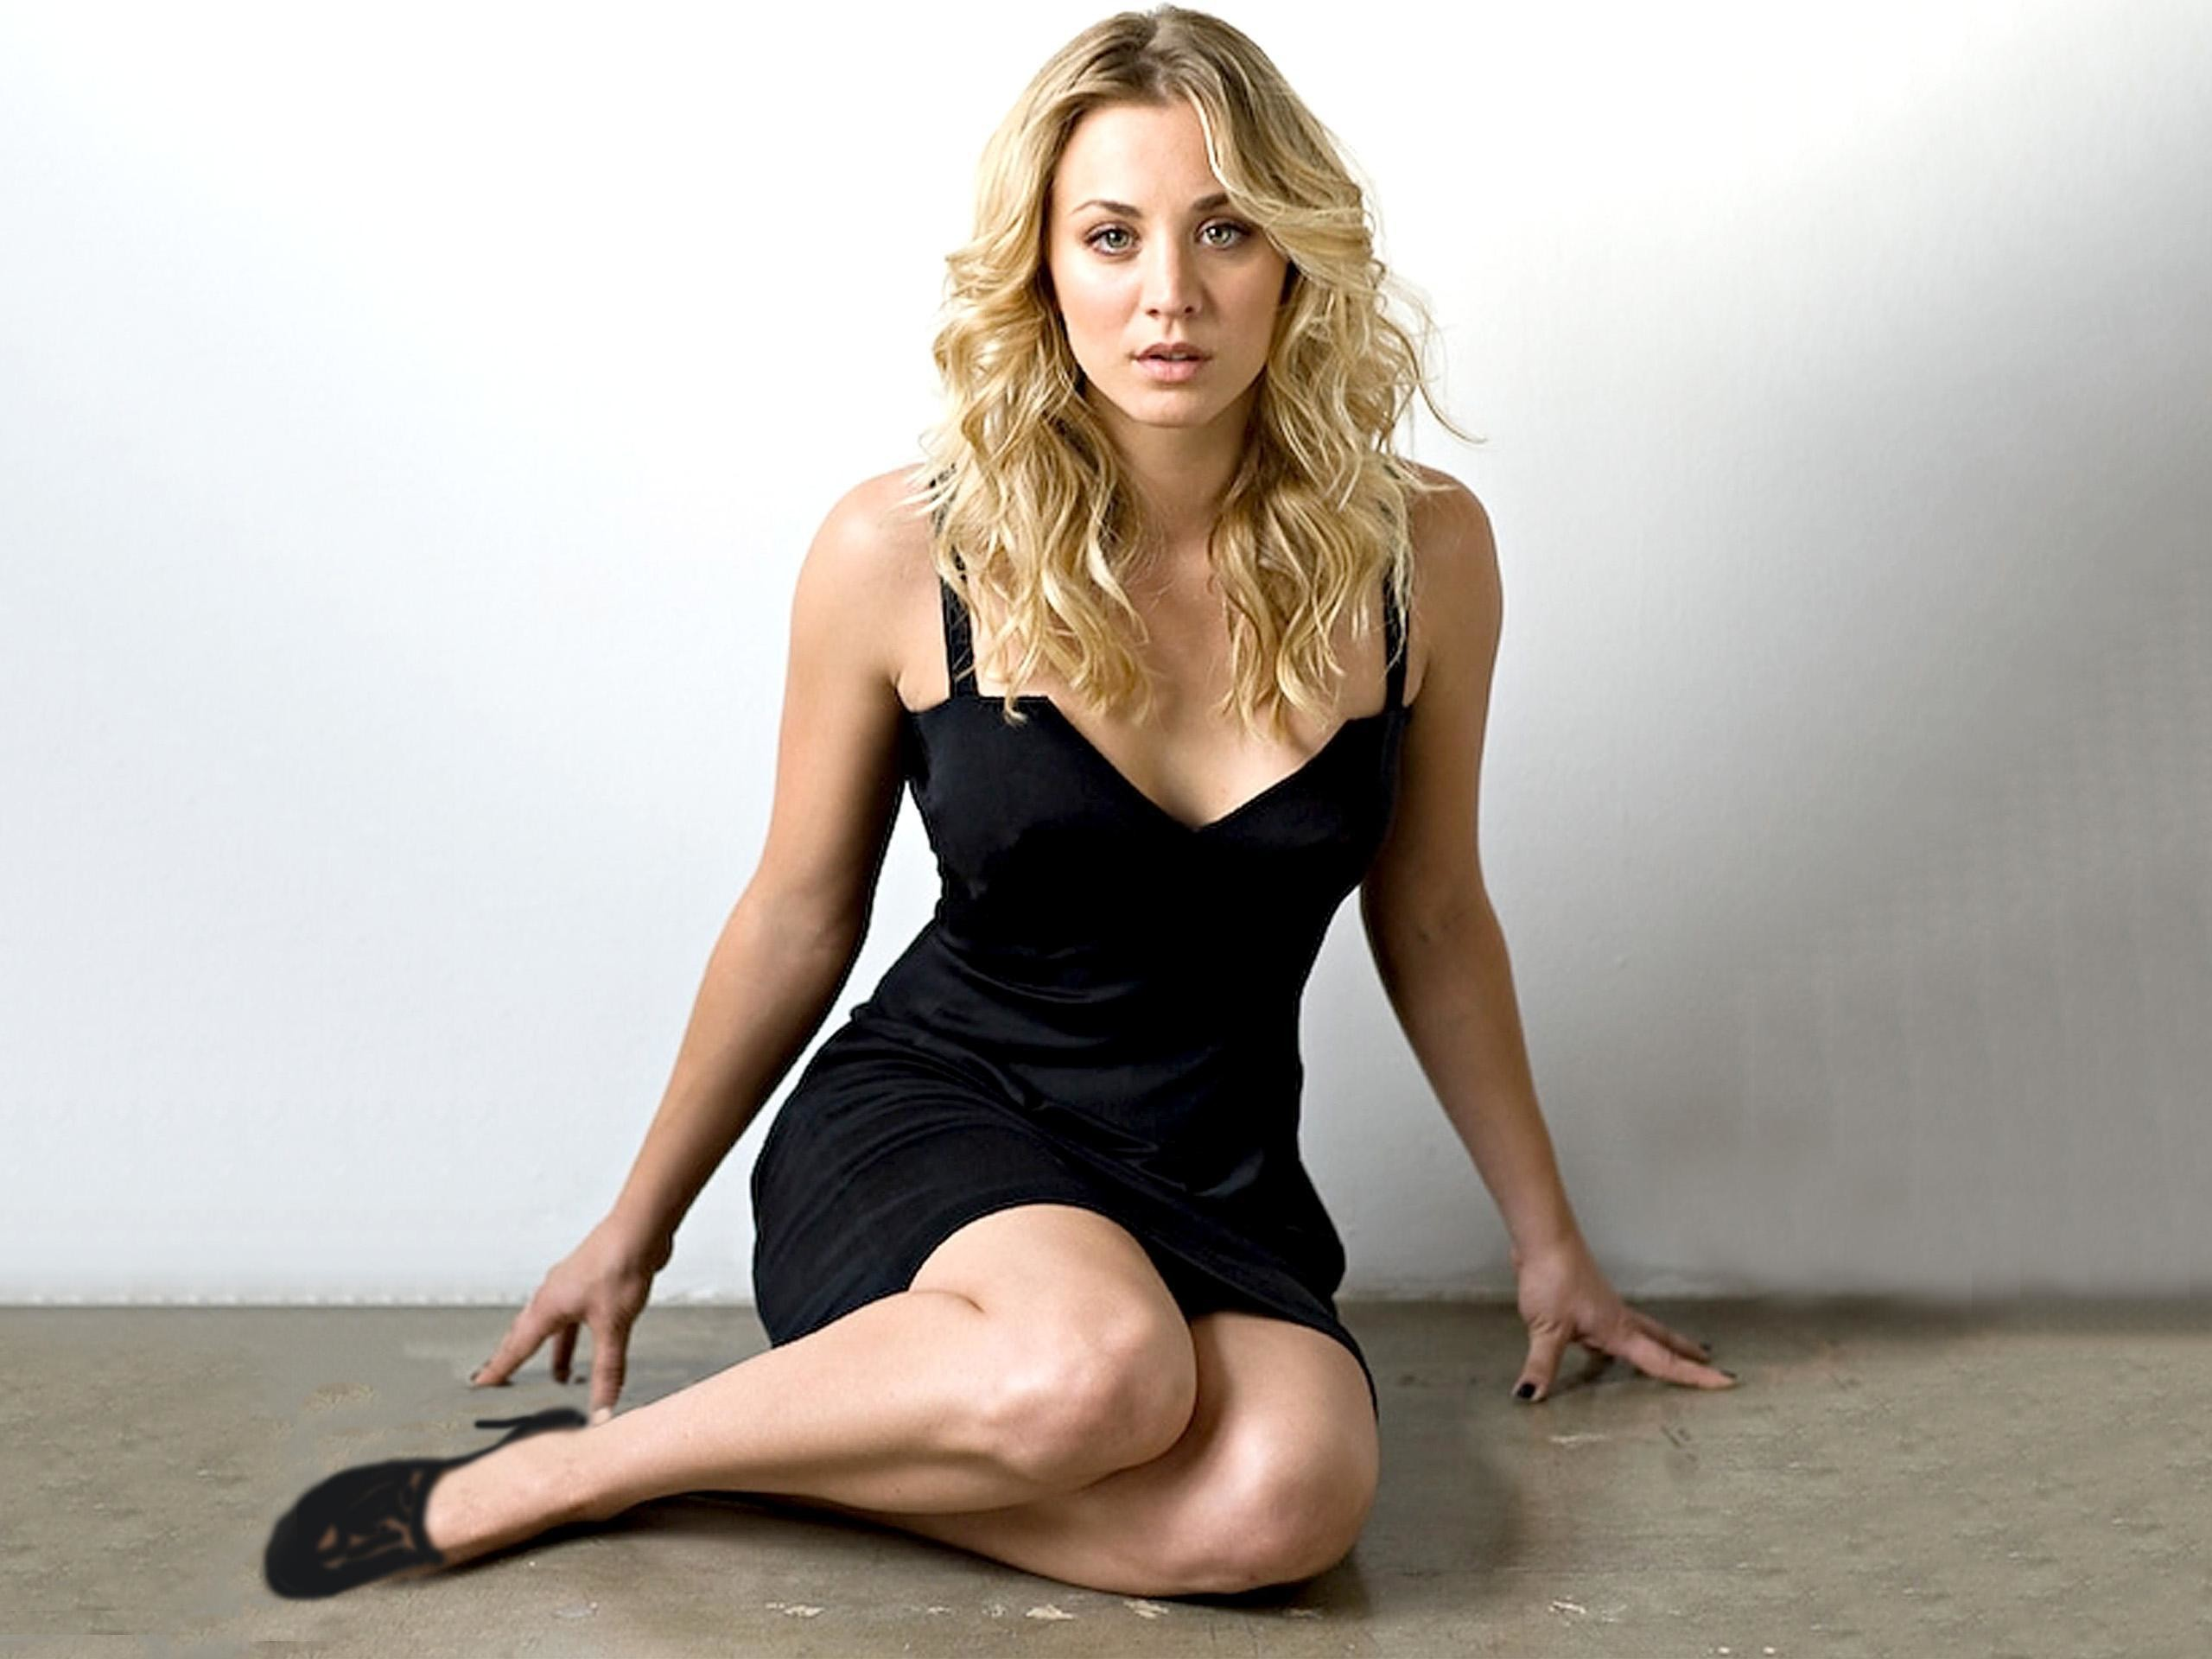 kaley cuoco wallpaper (75+ images)